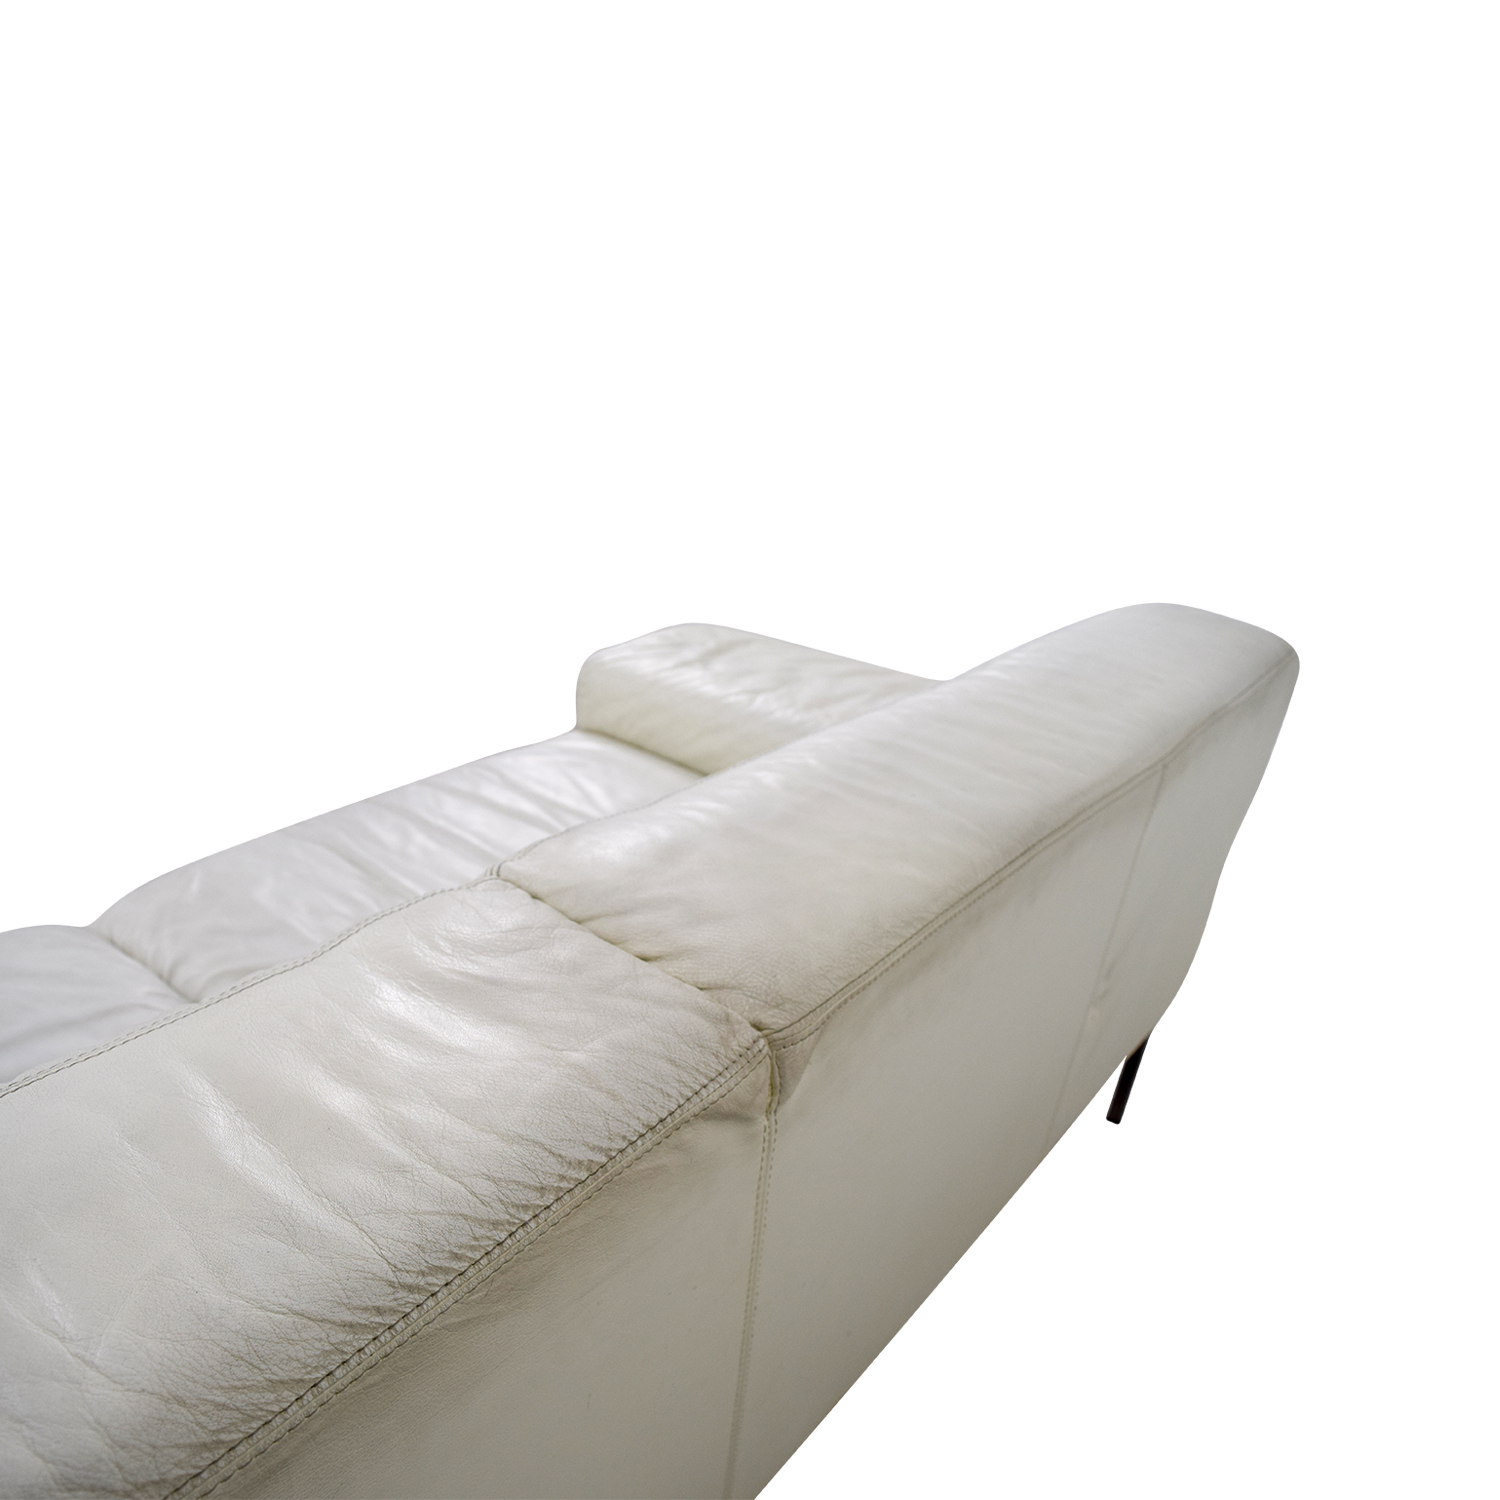 jensen lewis sleeper sofa price how to clean cushions microfiber 90 off american leather tuscan white classic sofas